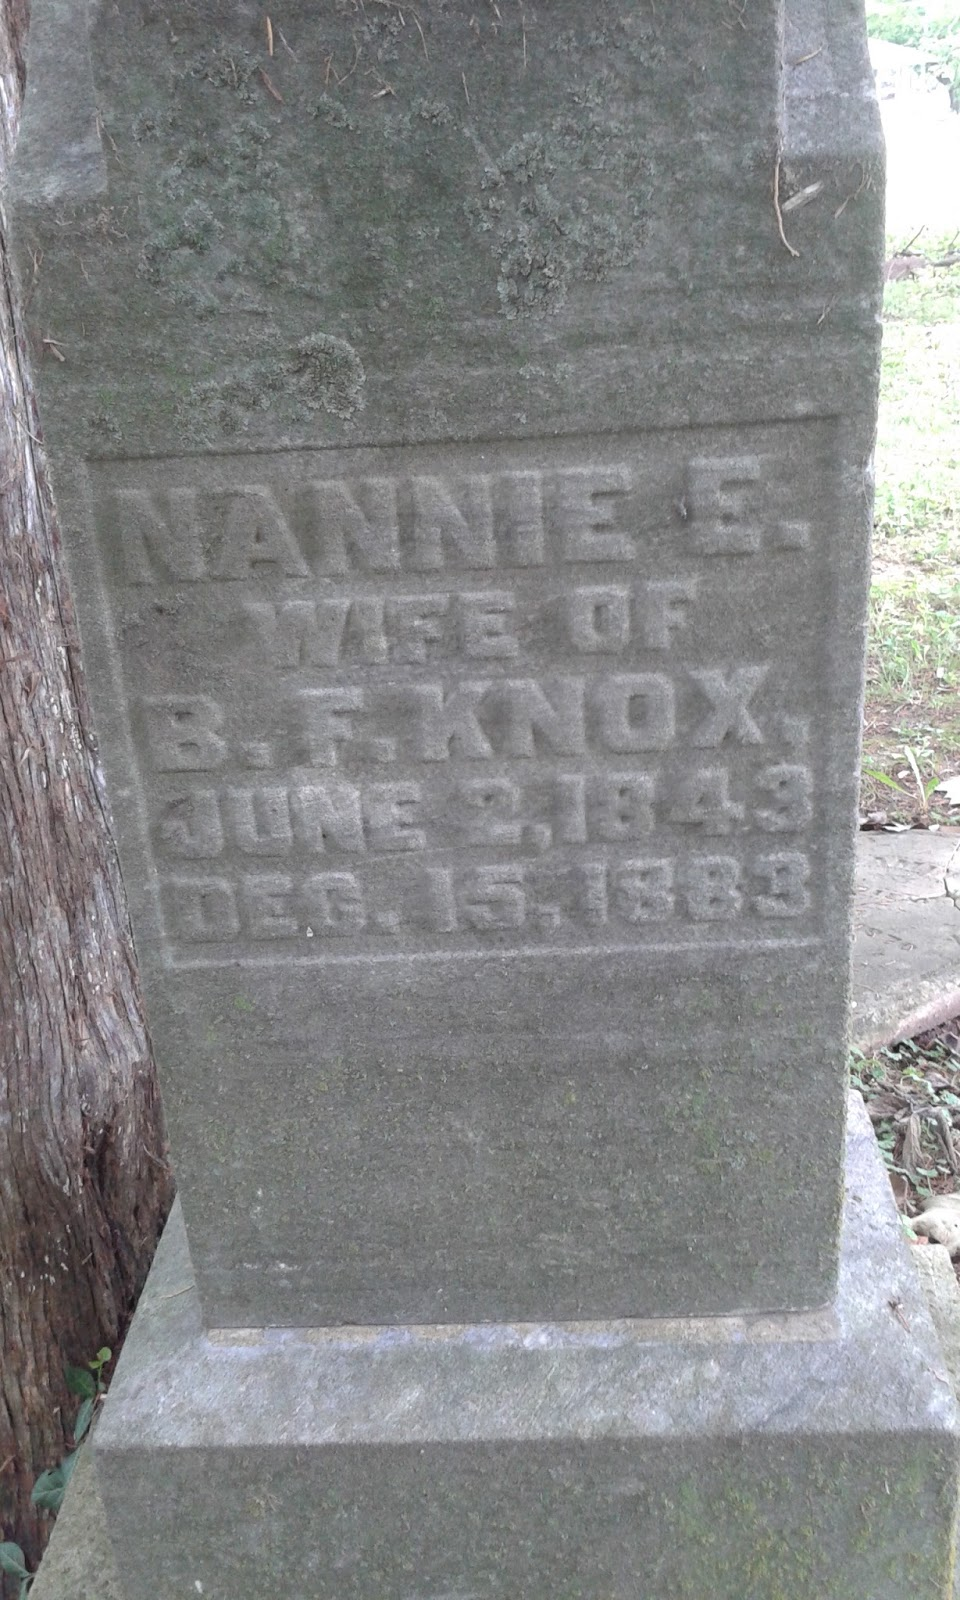 Indiana knox county ragsdale - He Was Married To Nancy E Fesler Knox 1843 1883 They Were Married On November 3 1864 She Is Buried Near Him In Old Baptist Church Cemetery